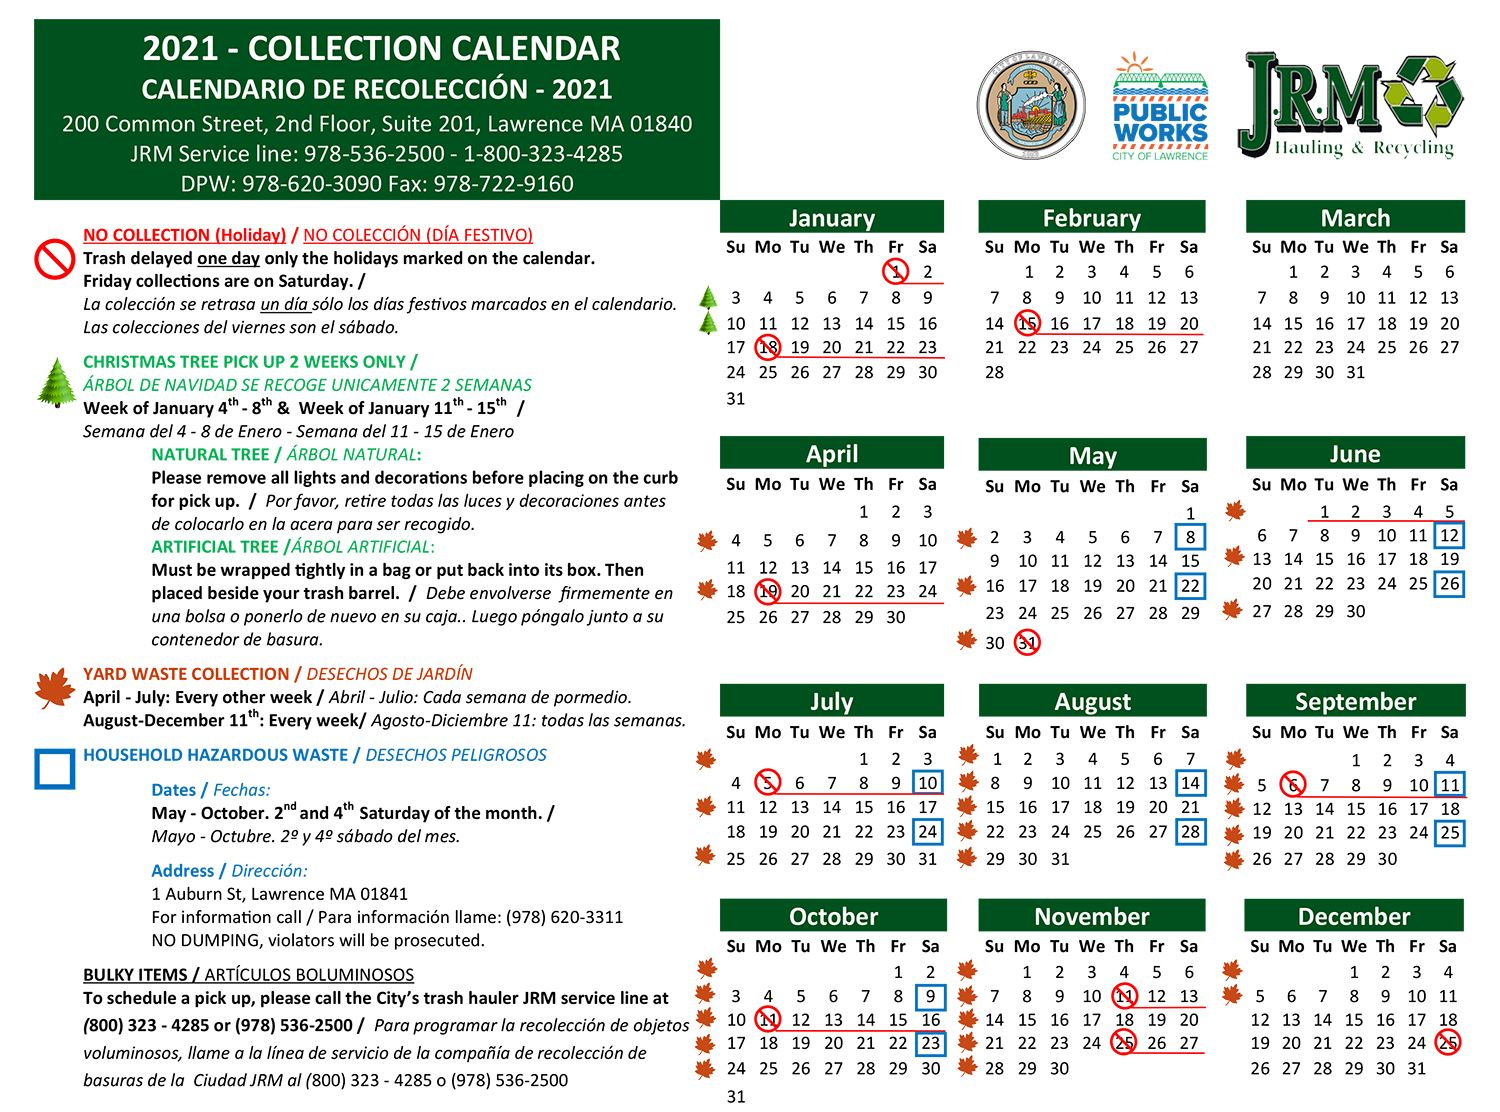 2021-COLLECTION-CALENDAR--Revised-12-3-20